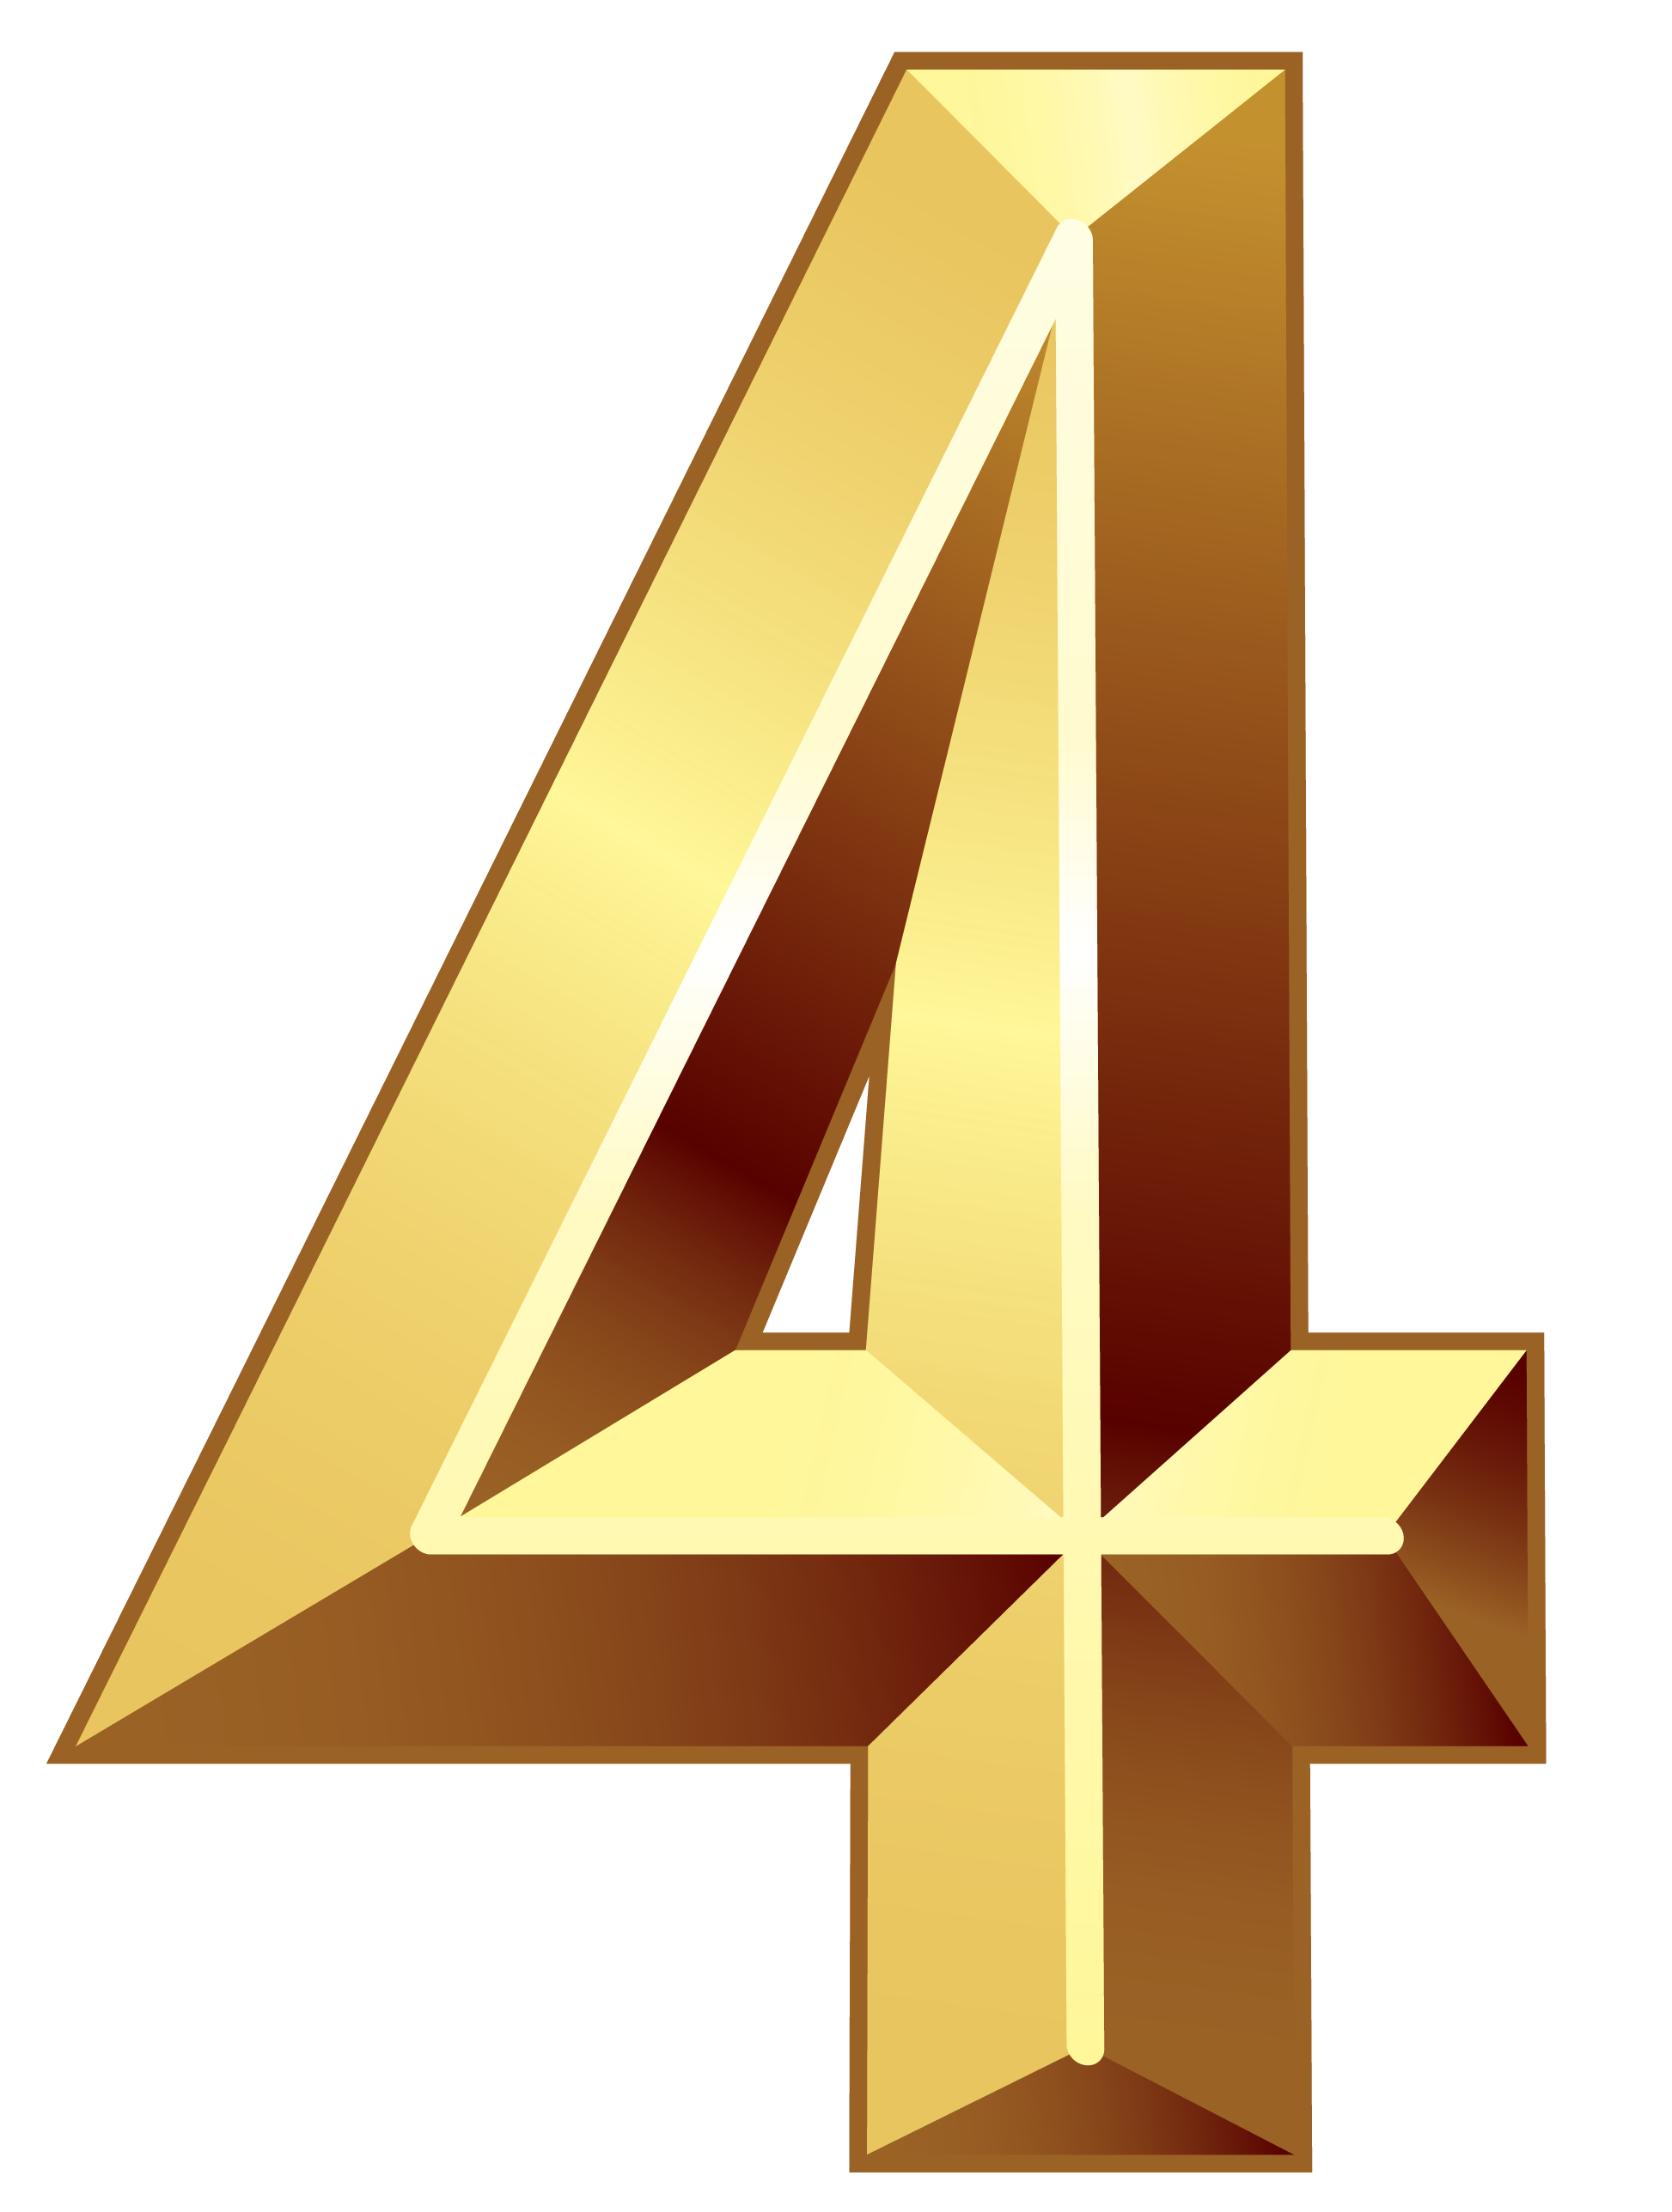 Gold number png image. Clipart bow four